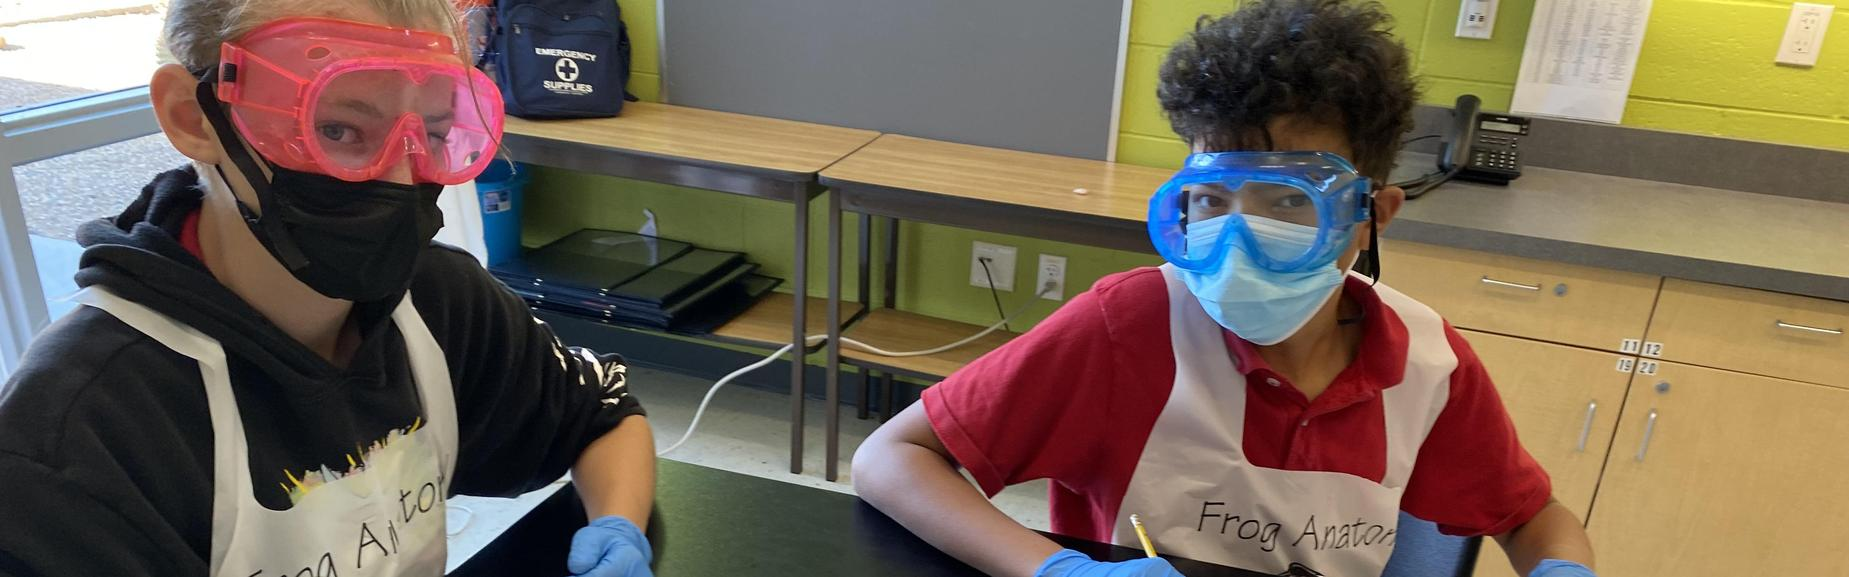 Two boys wearing masks and goggles working on a science experiment.